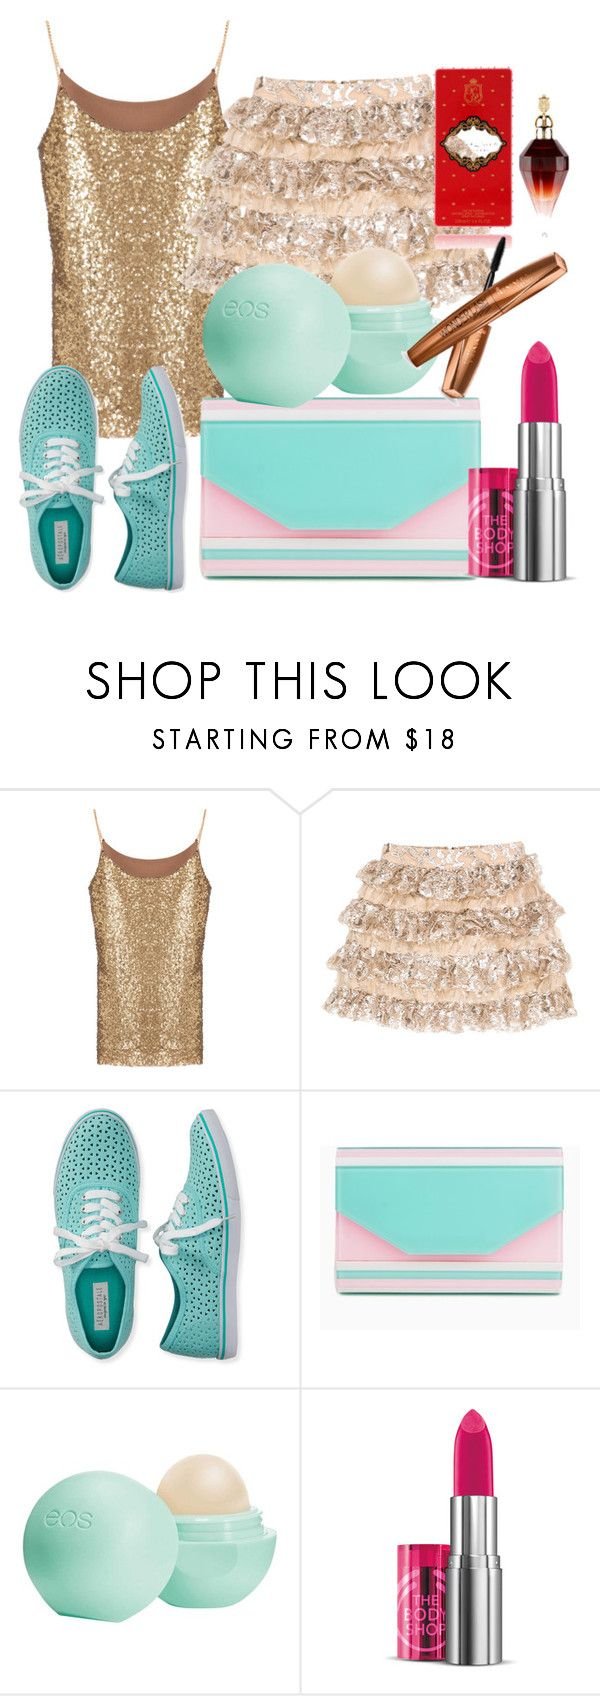 """""""Untitled #196"""" by sara-bitch1 ❤ liked on Polyvore featuring Alice + Olivia, Aéropostale, Eos and The Body Shop"""